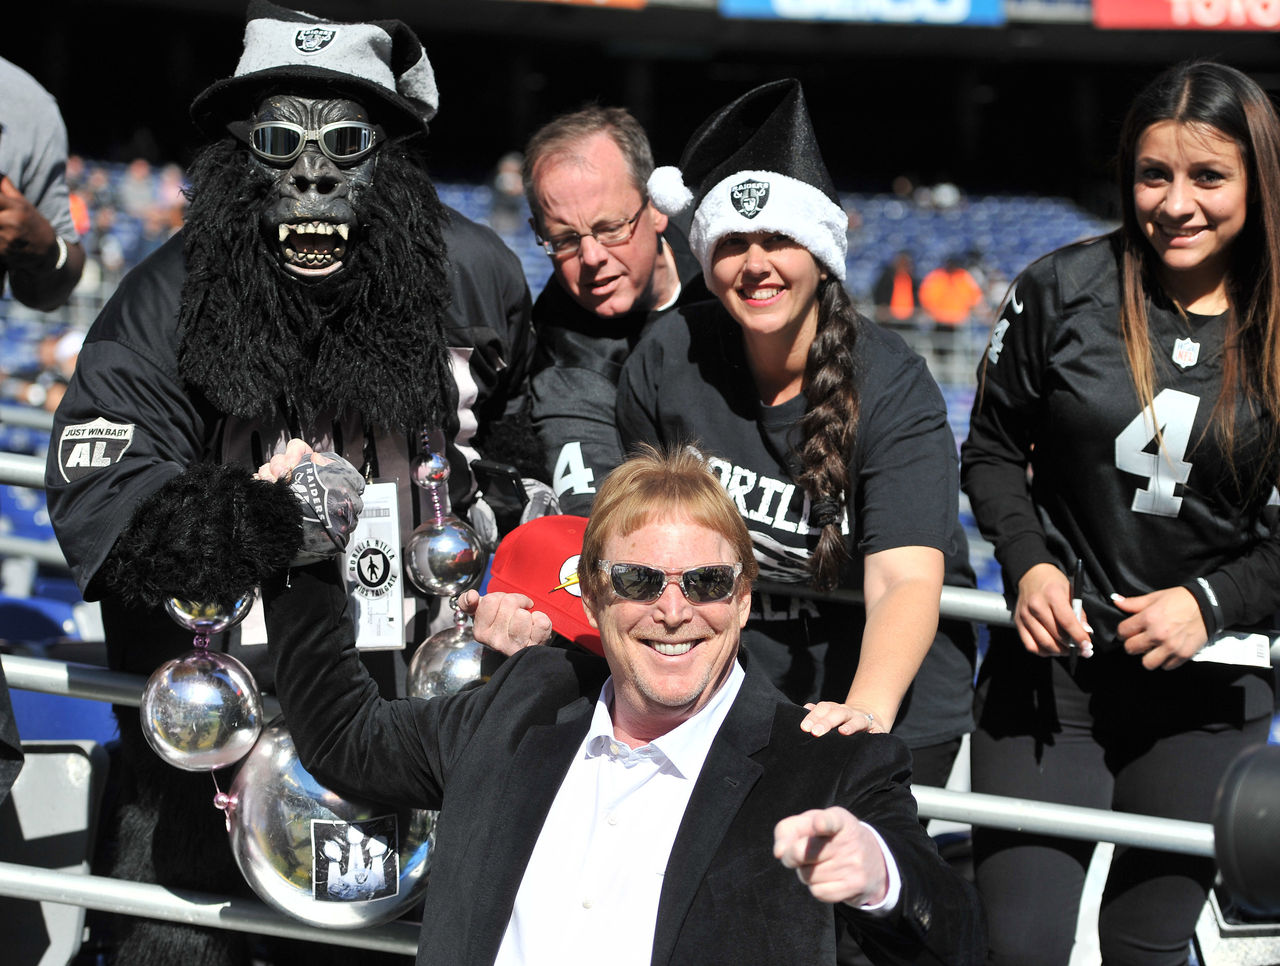 Cropped 2016 12 18t202614z 2008414381 nocid rtrmadp 3 nfl oakland raiders at san diego chargers